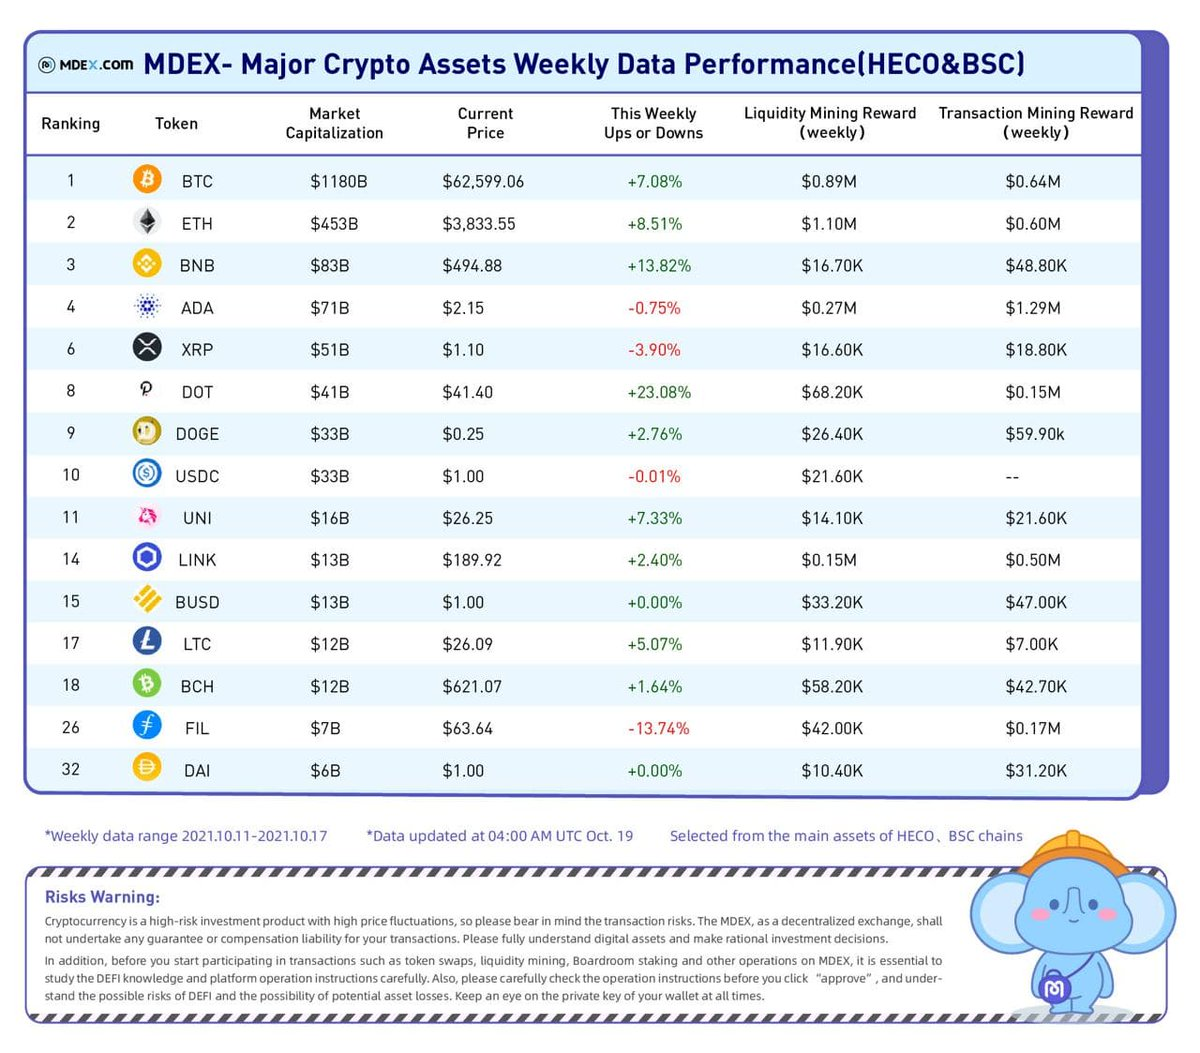 📰Major Crypto Assets Weekly Data Performance [#HECO& #BSC]- MDEX.COM 📆From: Oct 11, 2021-Oct 17, 2021. ✅Made by: #MDEX team. #MDX #CryptoAssetsWeeklyreport